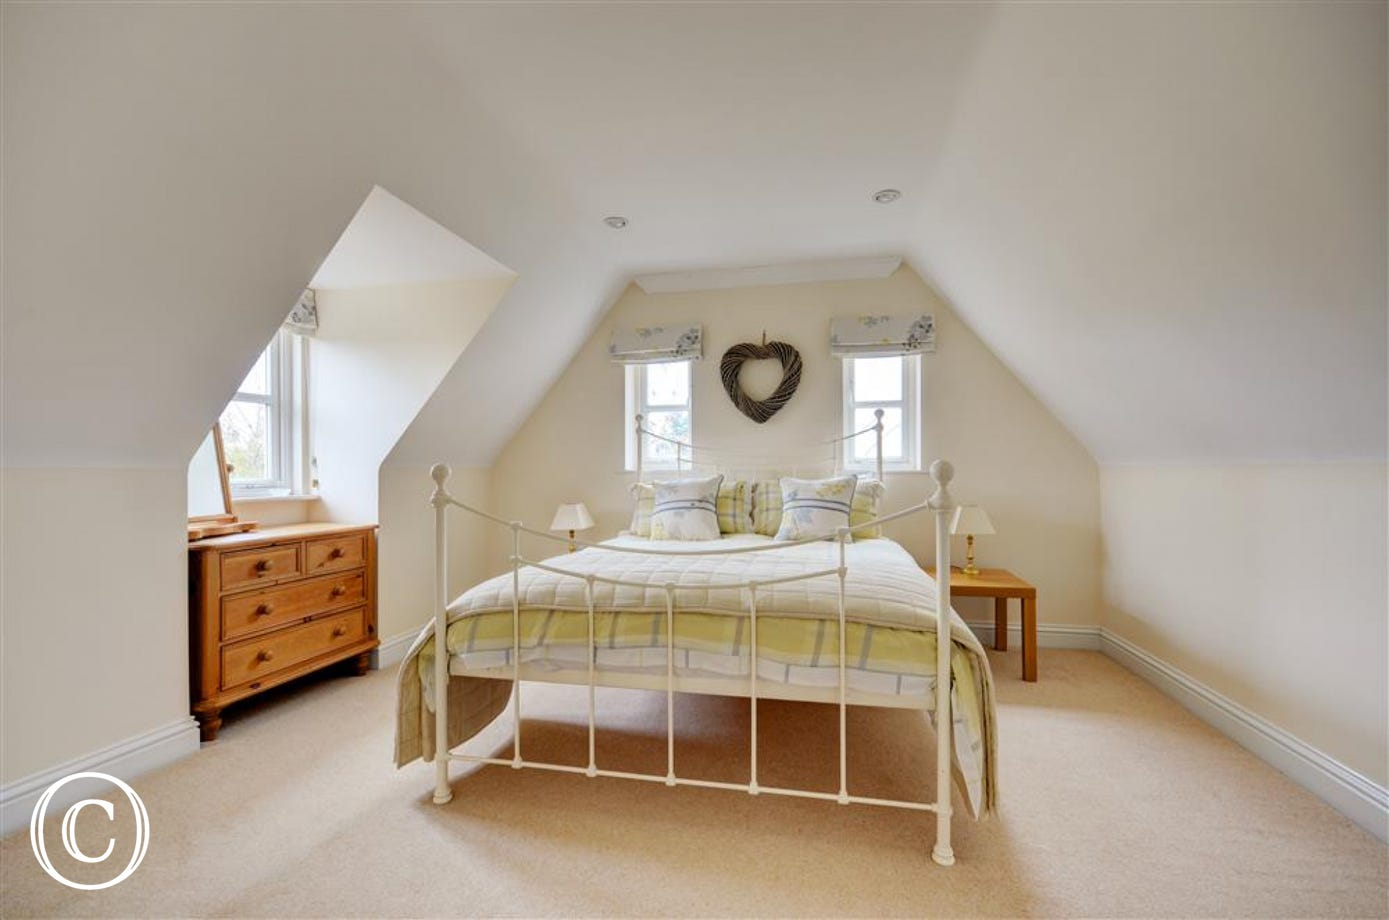 Lovely bedroom with Kingsize iron bed, sloped ceilings with chest of drawers in window recess.